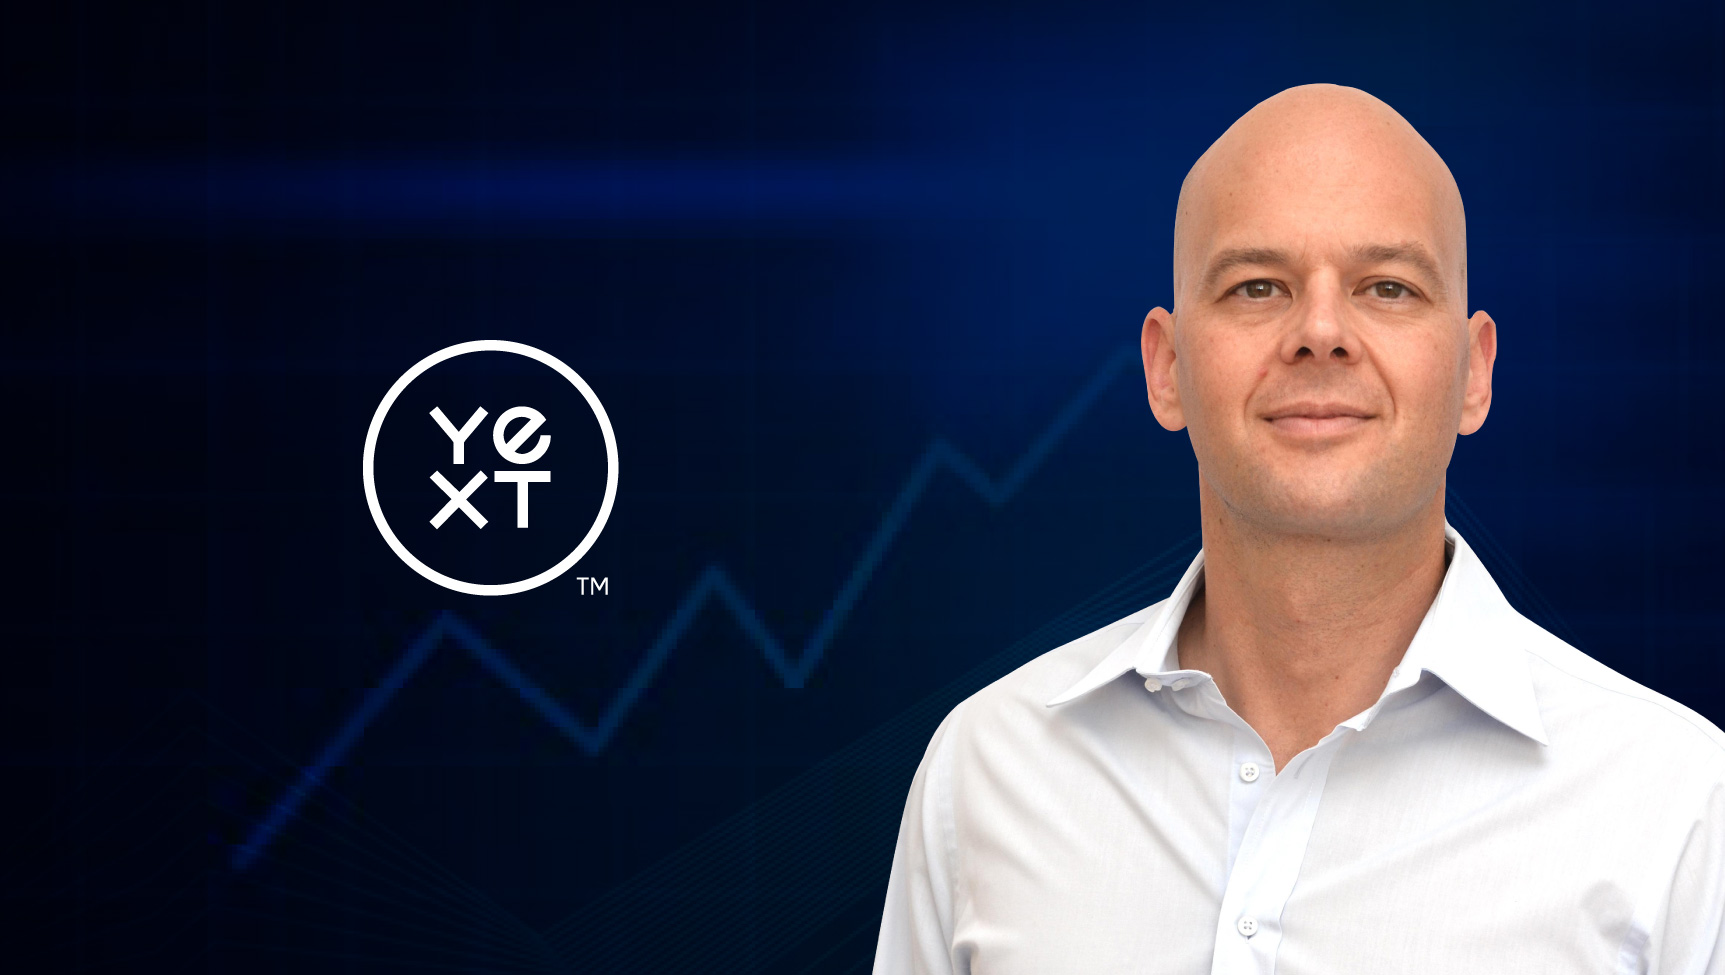 SalesTech Star Interview with Nico Beukes, RVP Northern Europe at Yext